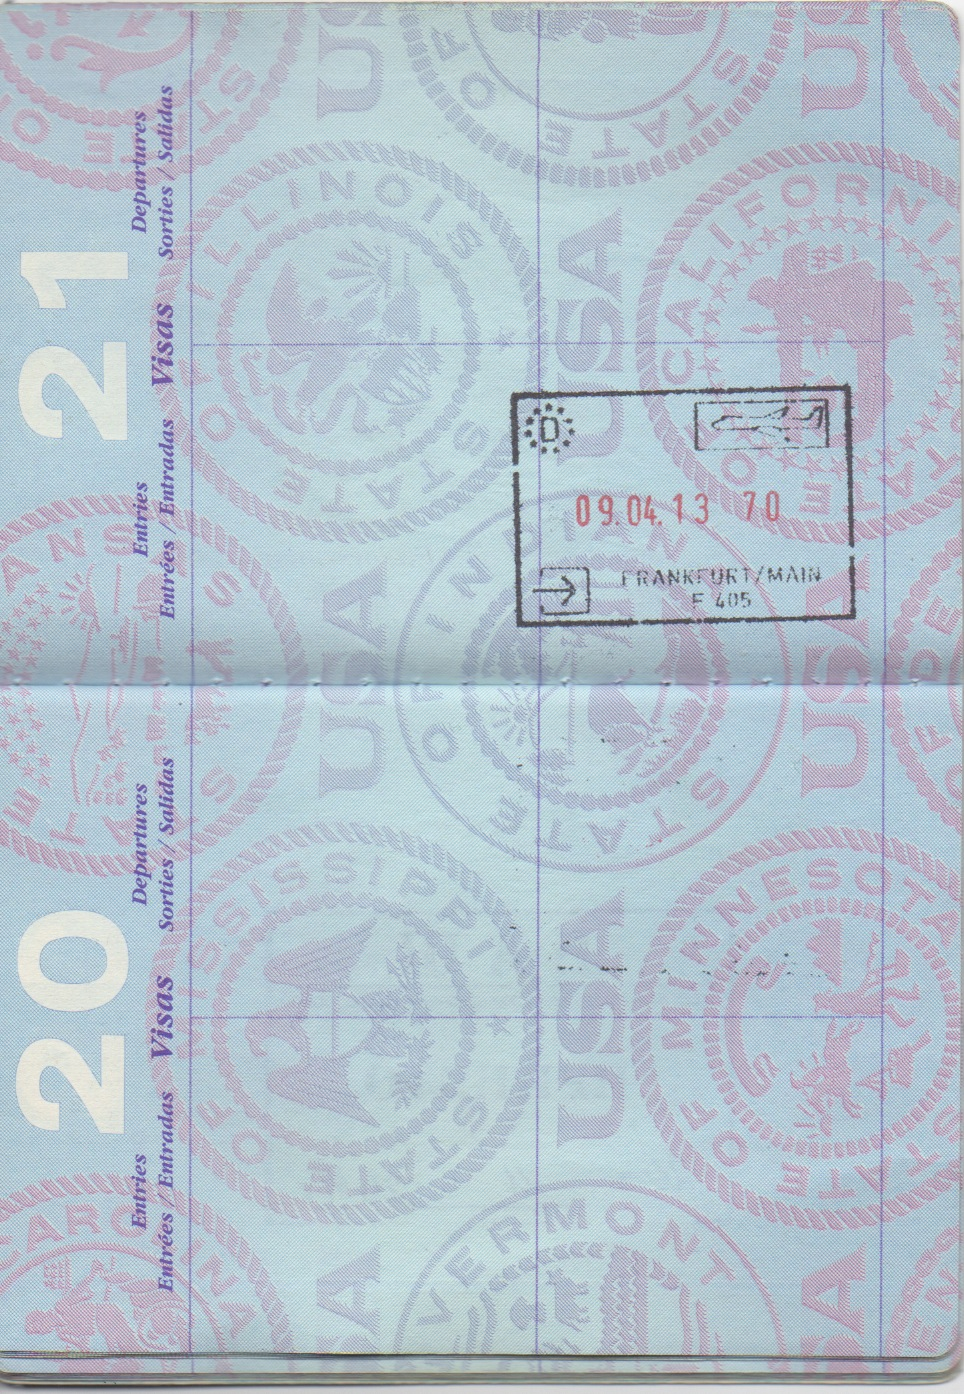 Retiring An Old Passport With A Lot Of Fun Travel Memories